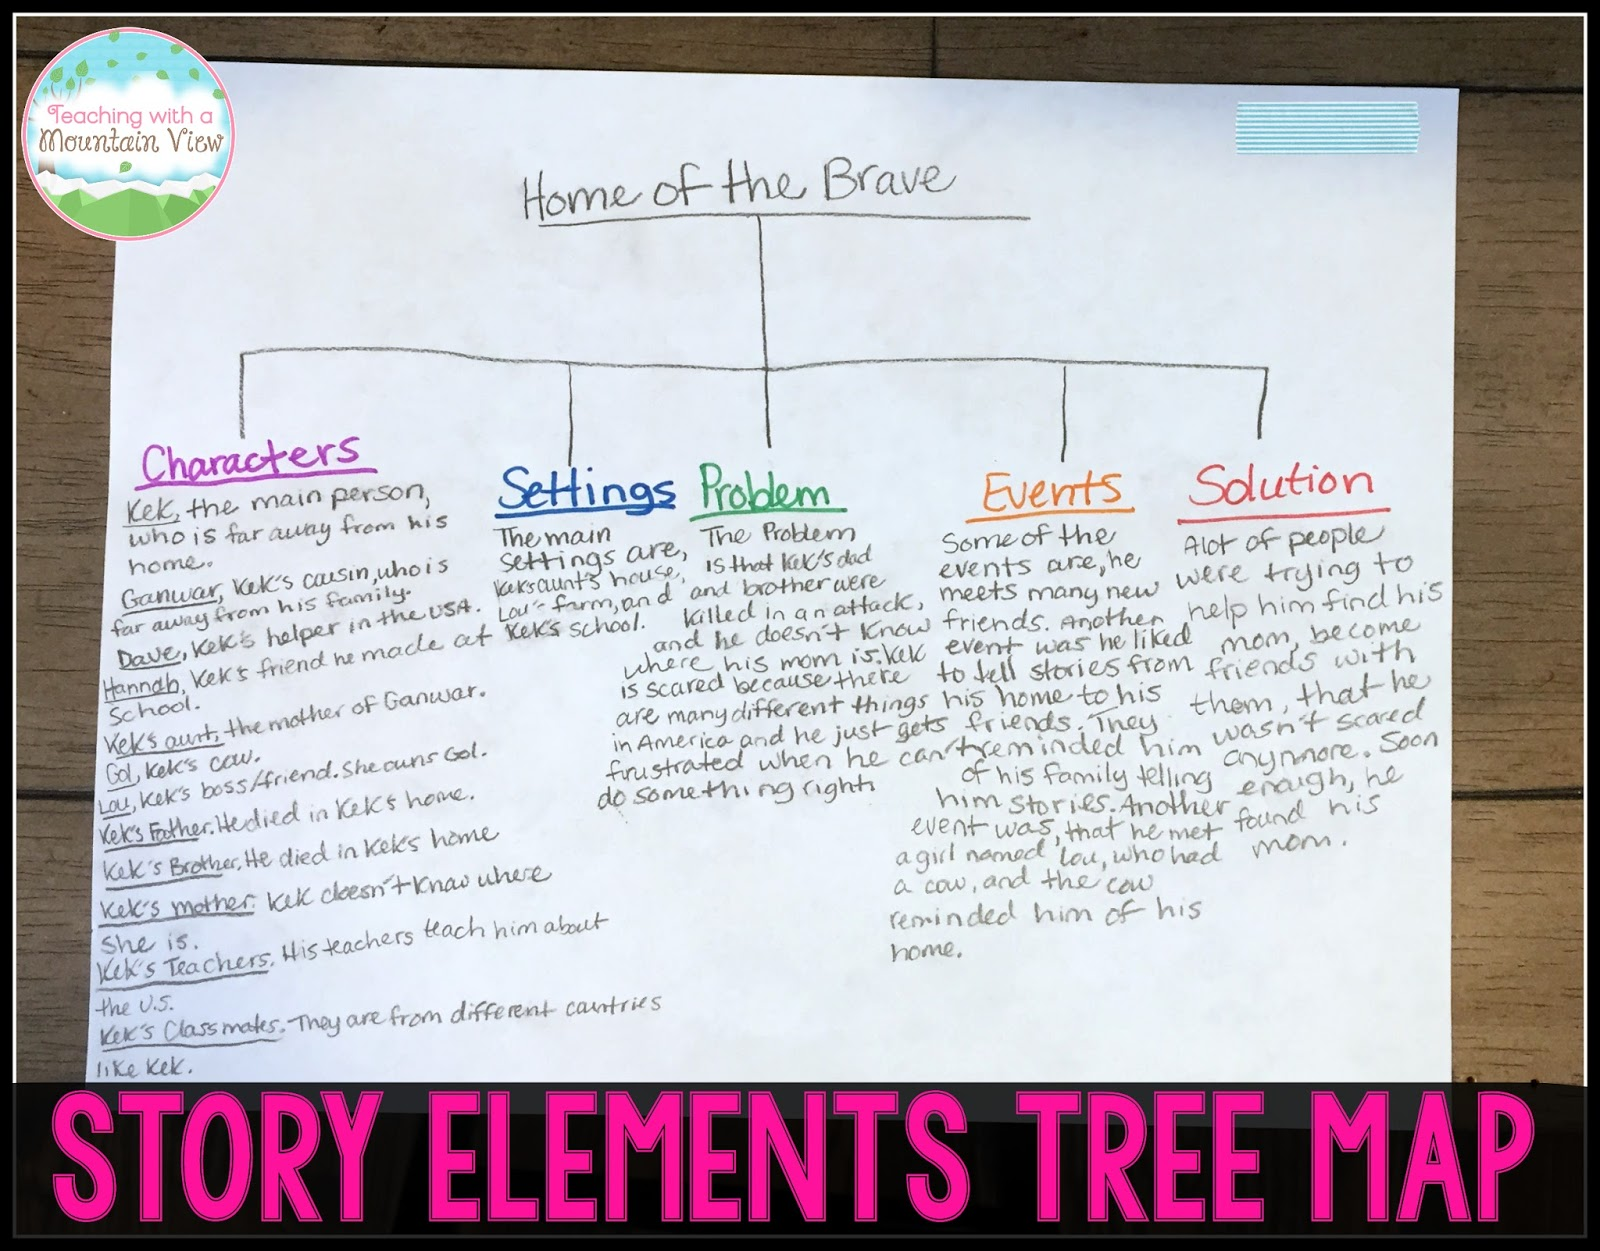 small resolution of during our story elements unit one of the culminating assignments i have them complete is a story elements tree map from thinking maps here s an example